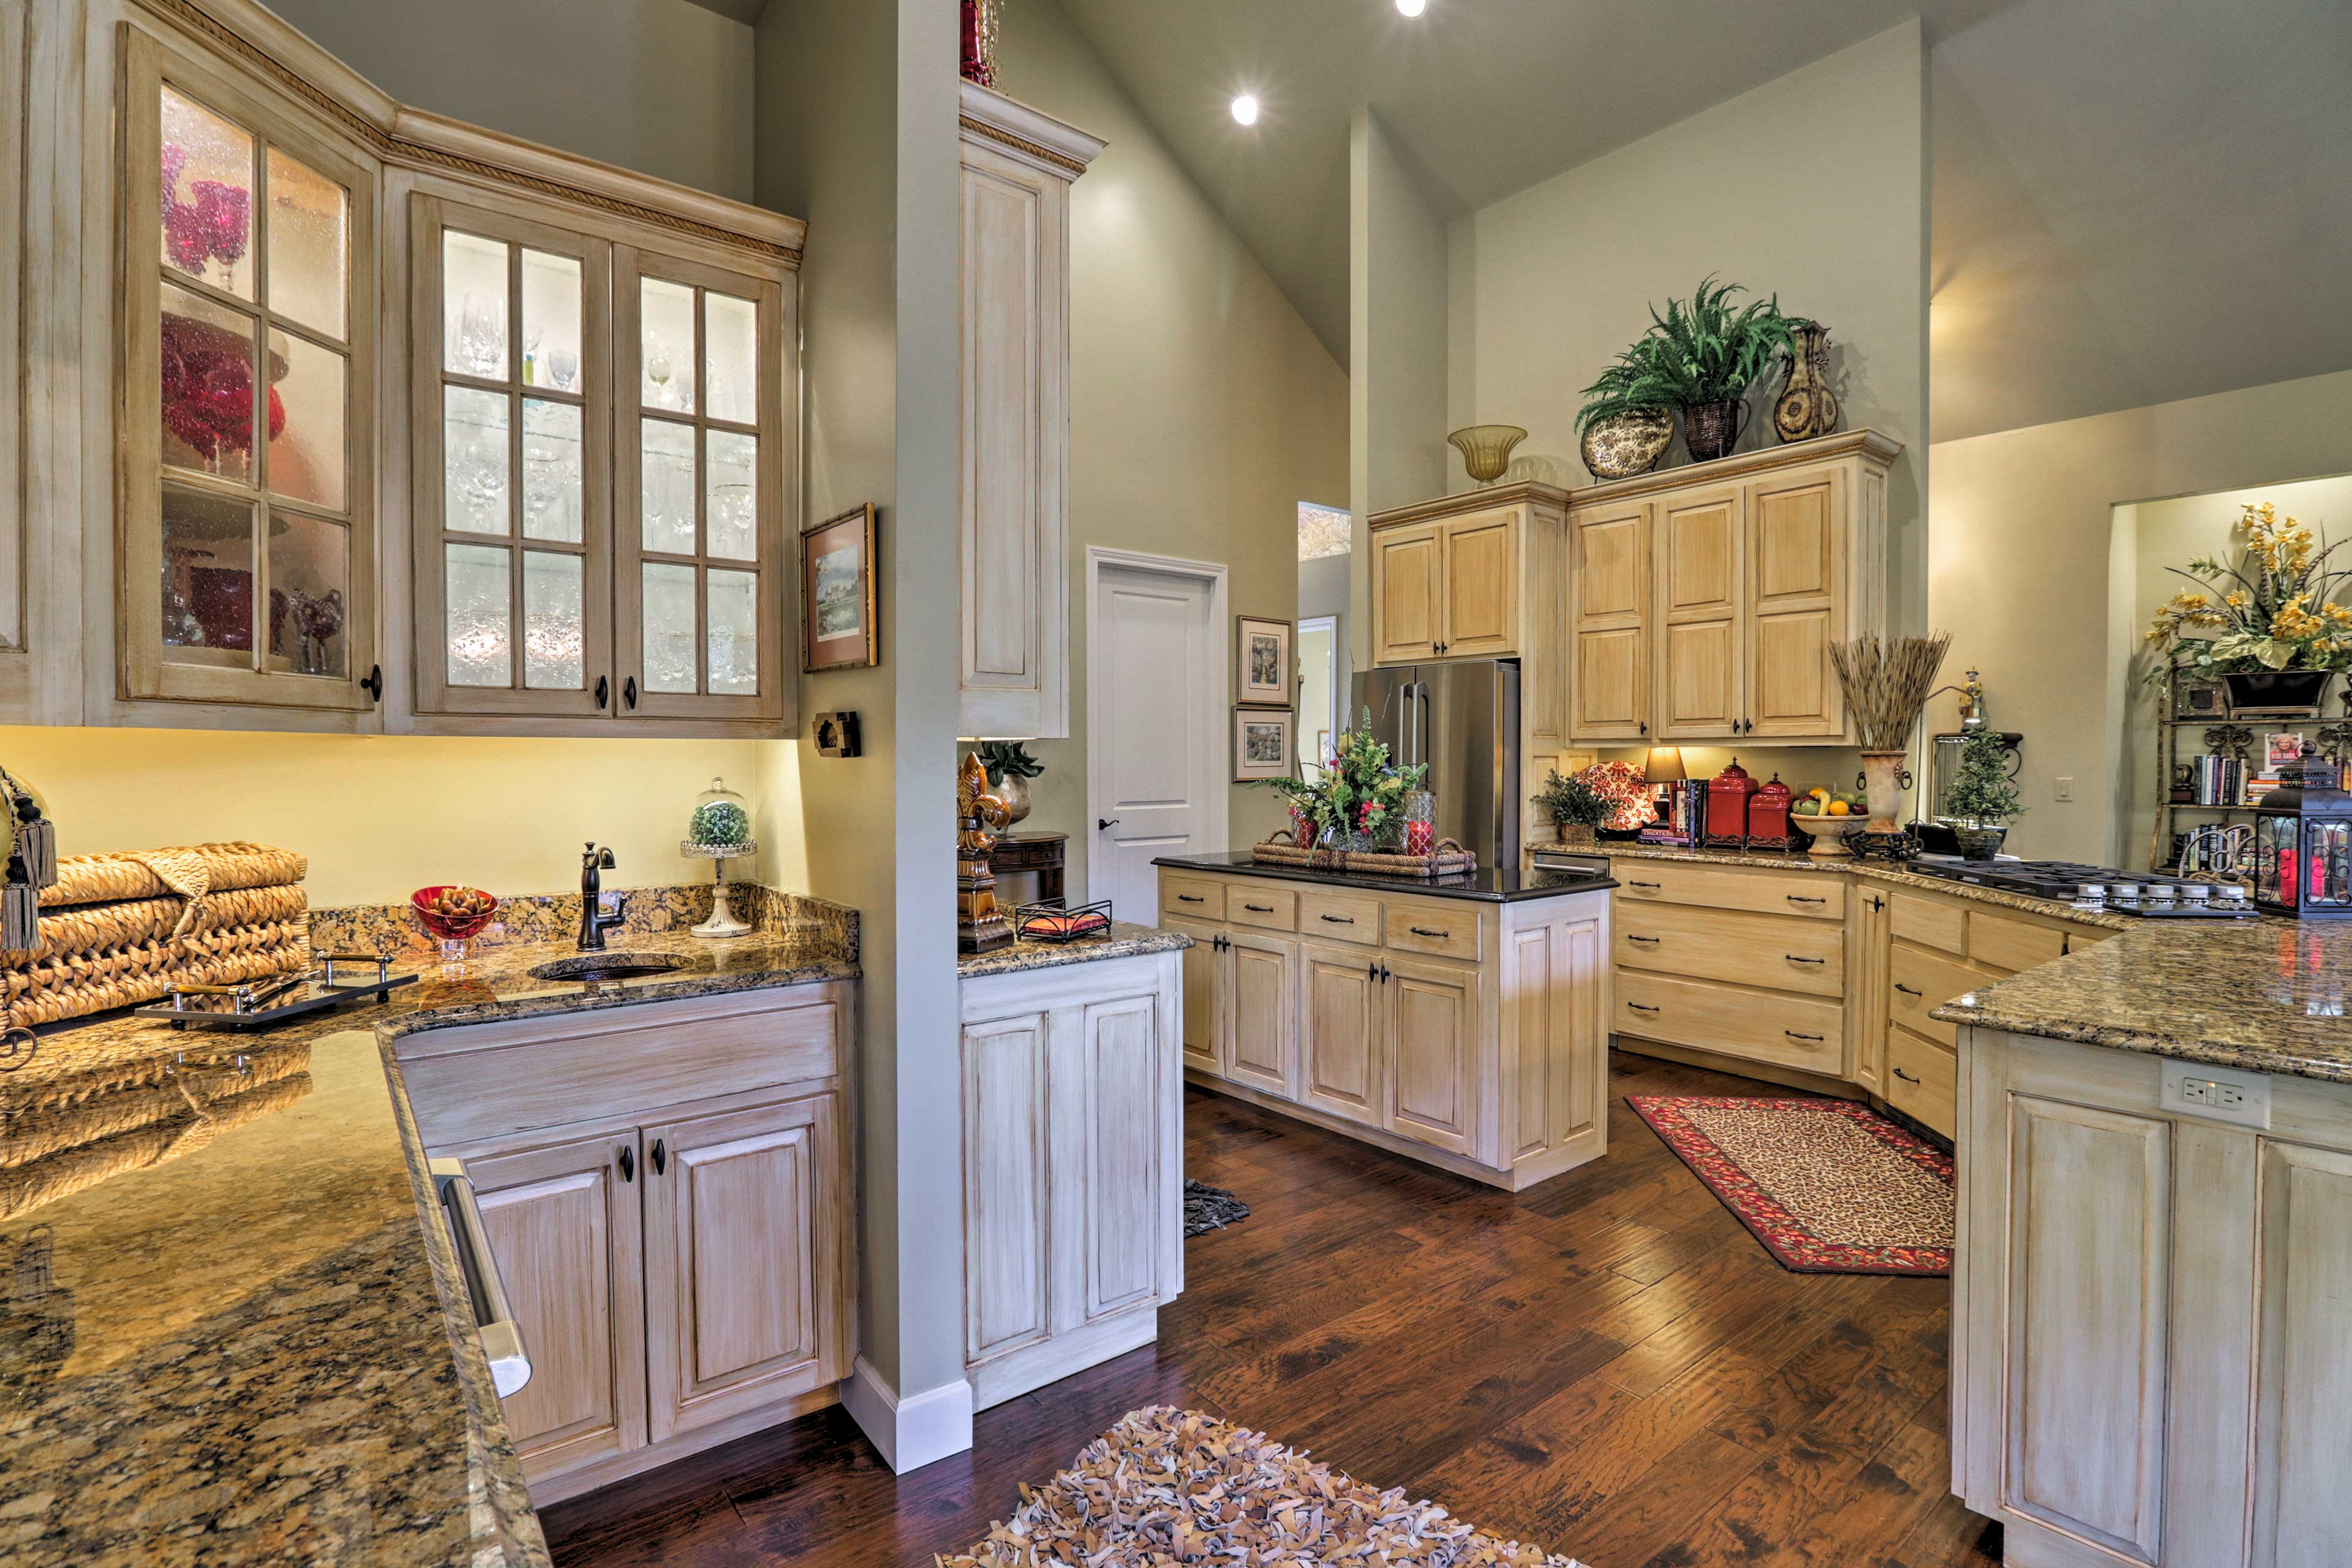 The fully equipped gourmet kitchen is sure to impress the chef of the group!